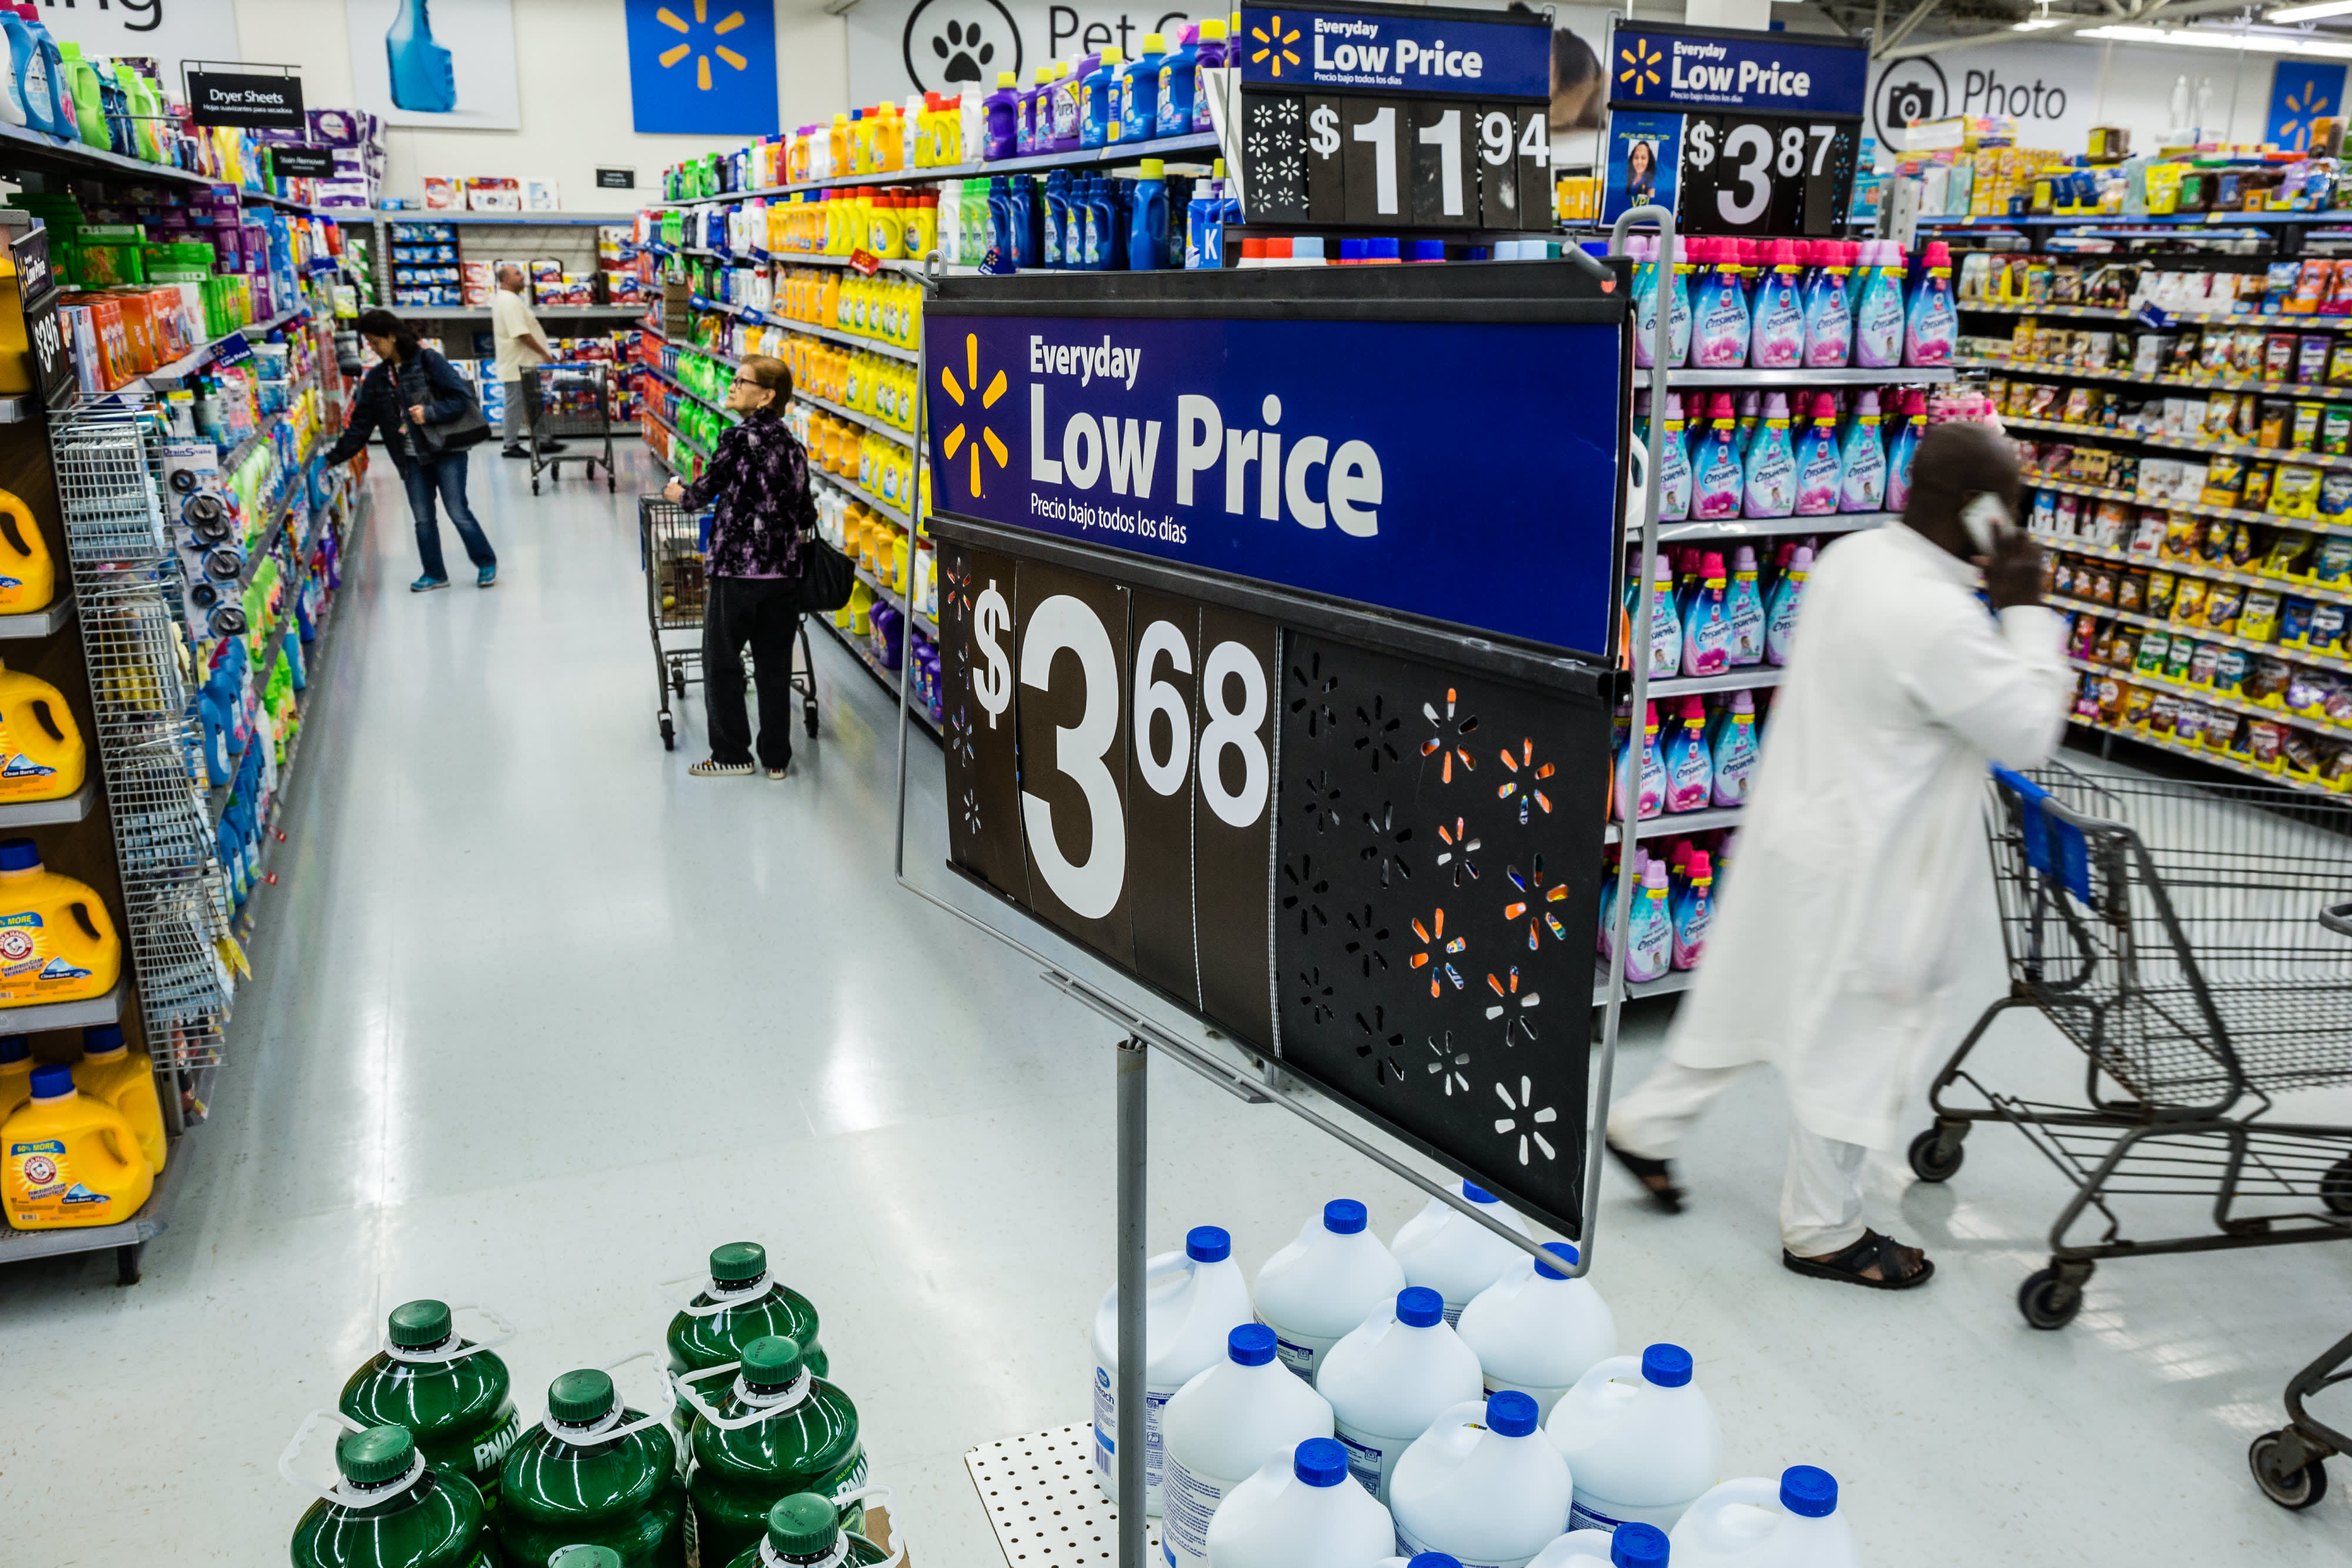 Walmart reports first-quarter earnings for fiscal 2020